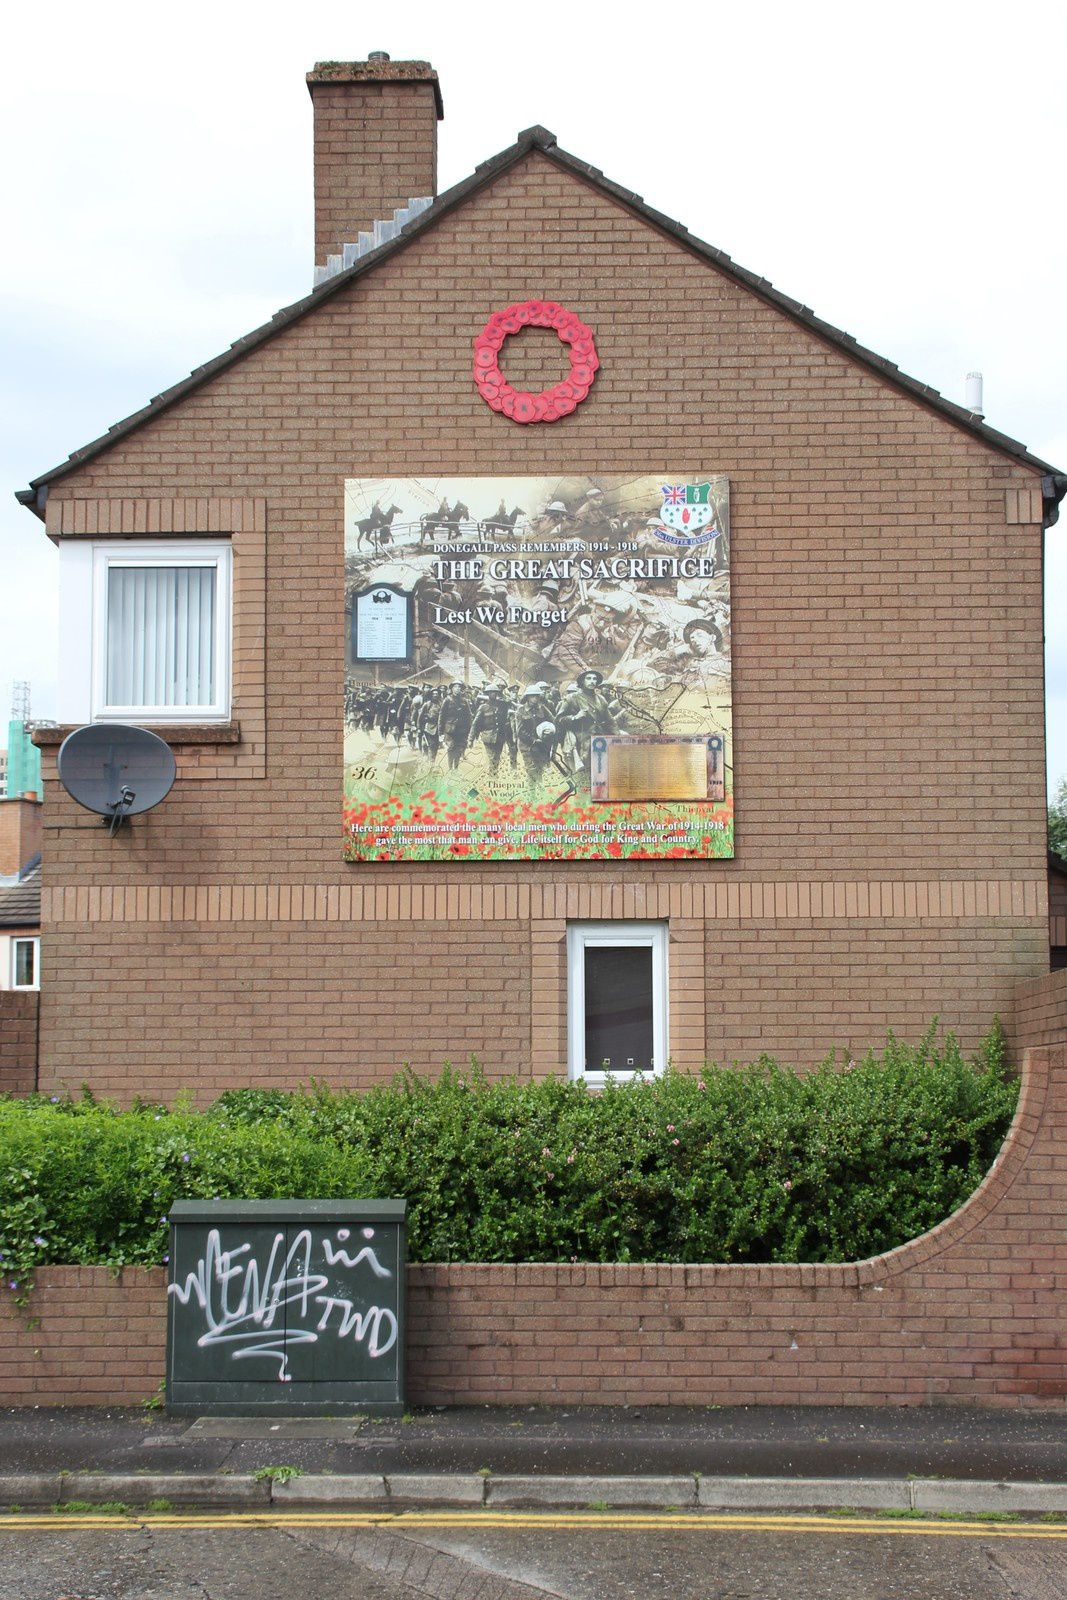 675) Charlotte Street, Donegall Pass, South Belfast